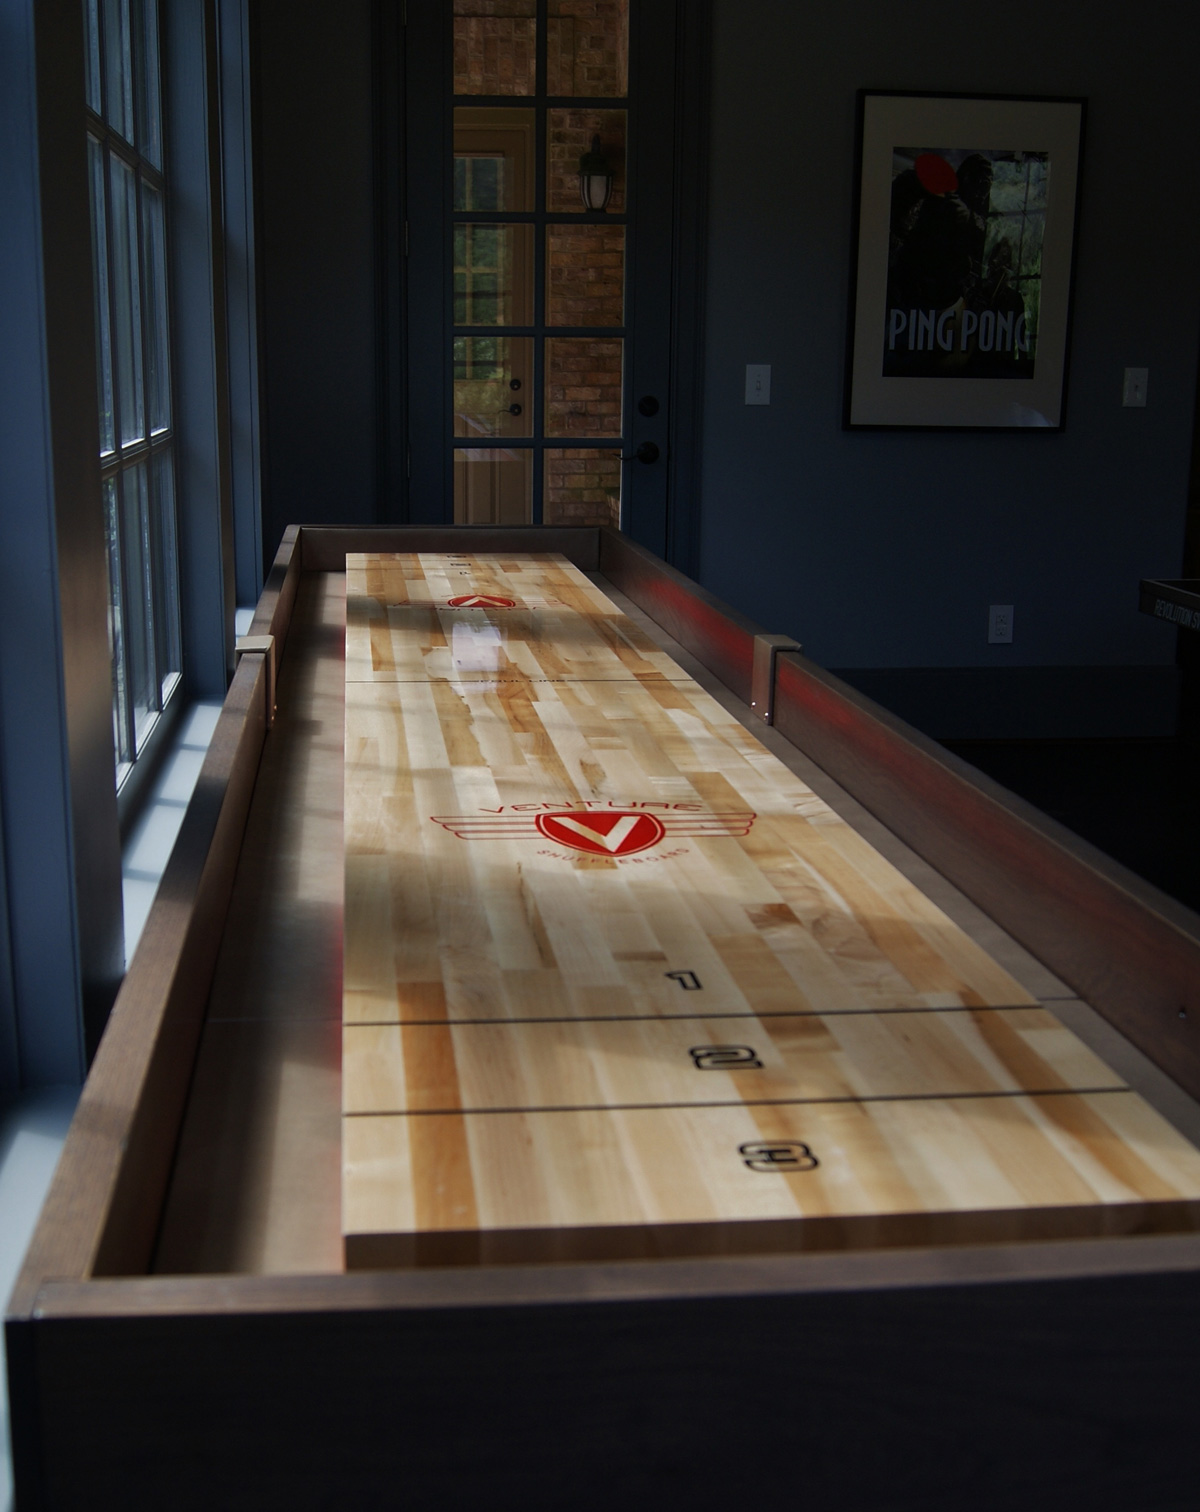 table tabletop product uncommongoods board shuffle game shuffleboard thumbnail wooden